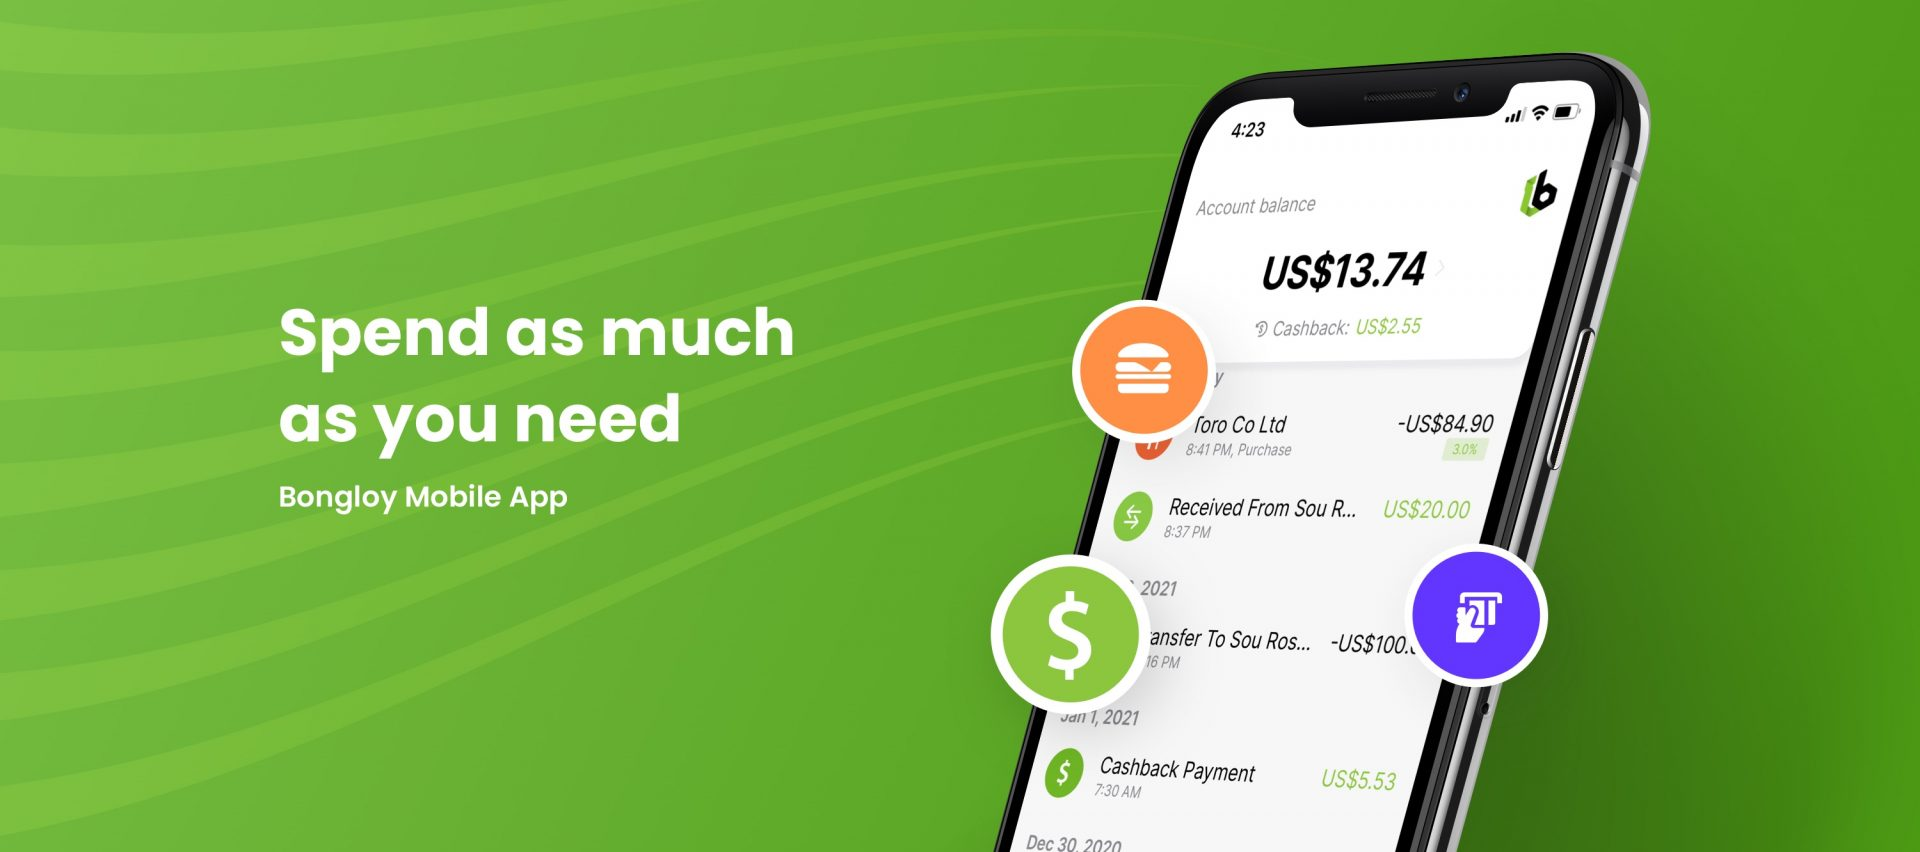 Bongloy's first digital wallet in Cambodia